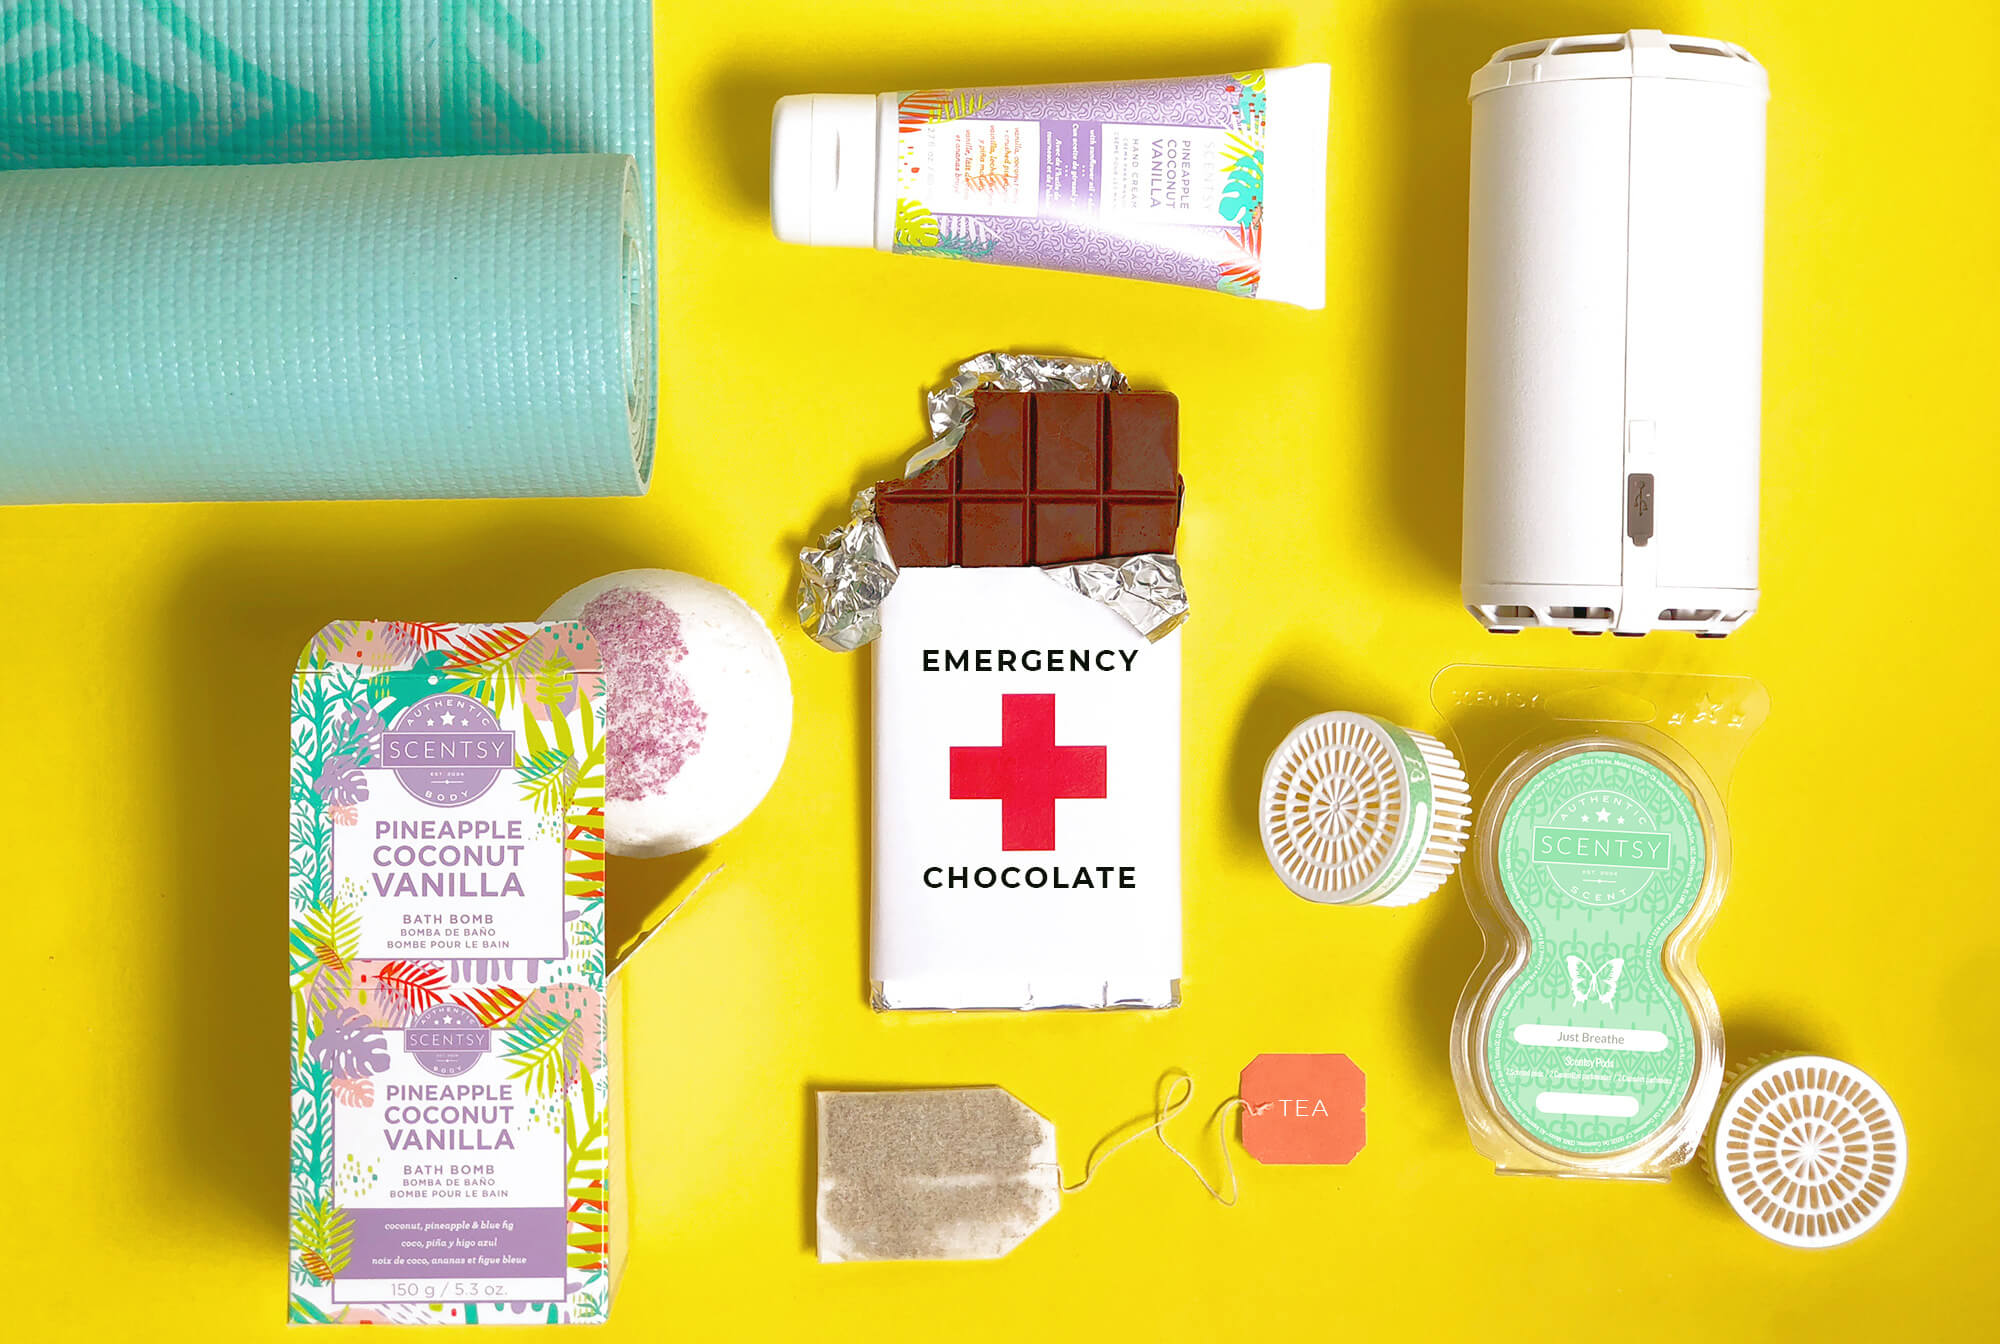 8/13 blog post featuring - Pineapple coconut vanilla bath bomb and body cream, Scentsy go white solid, and Scentsy pod just breath, emergency chocolate bar